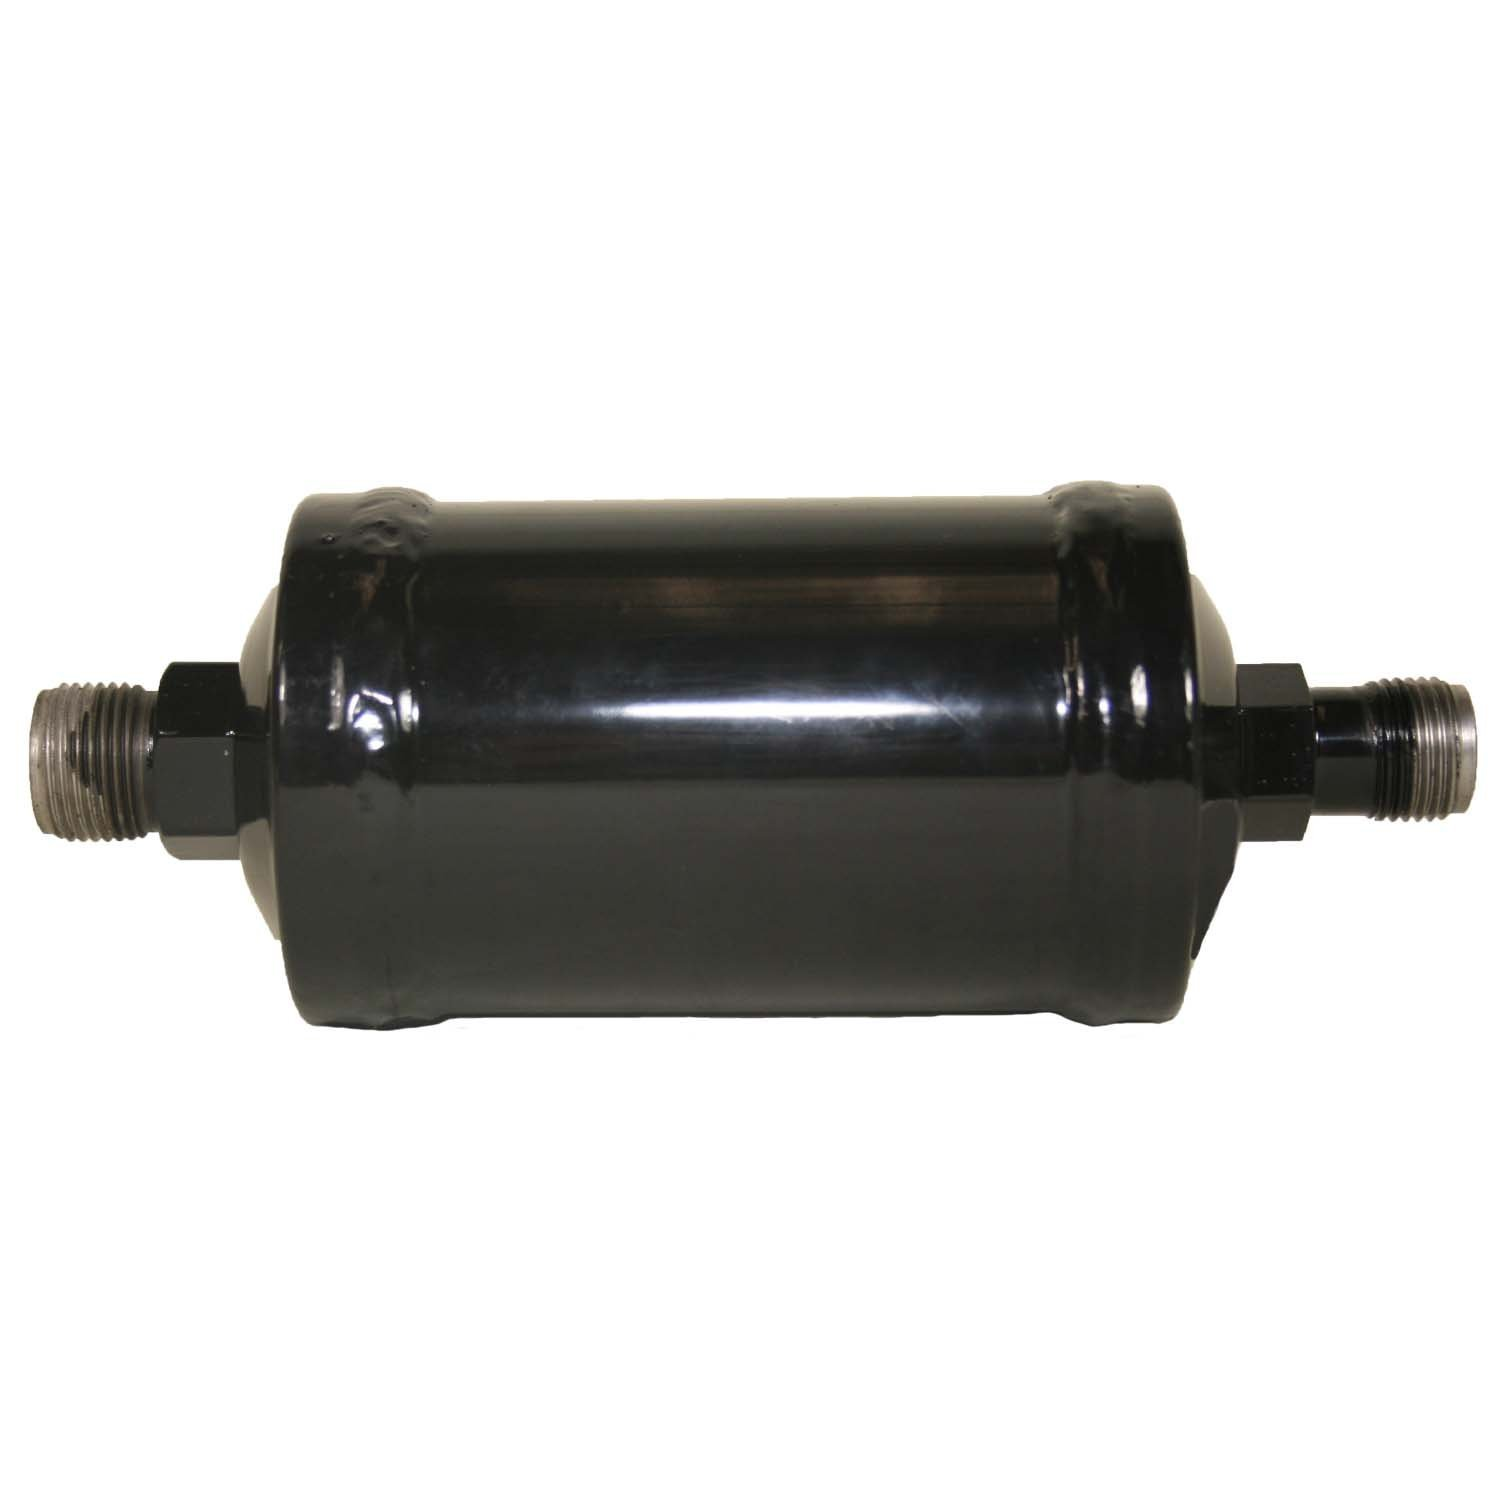 TCW Quality A//C Drier 17-5682 with Perfect Vehicle Fitment